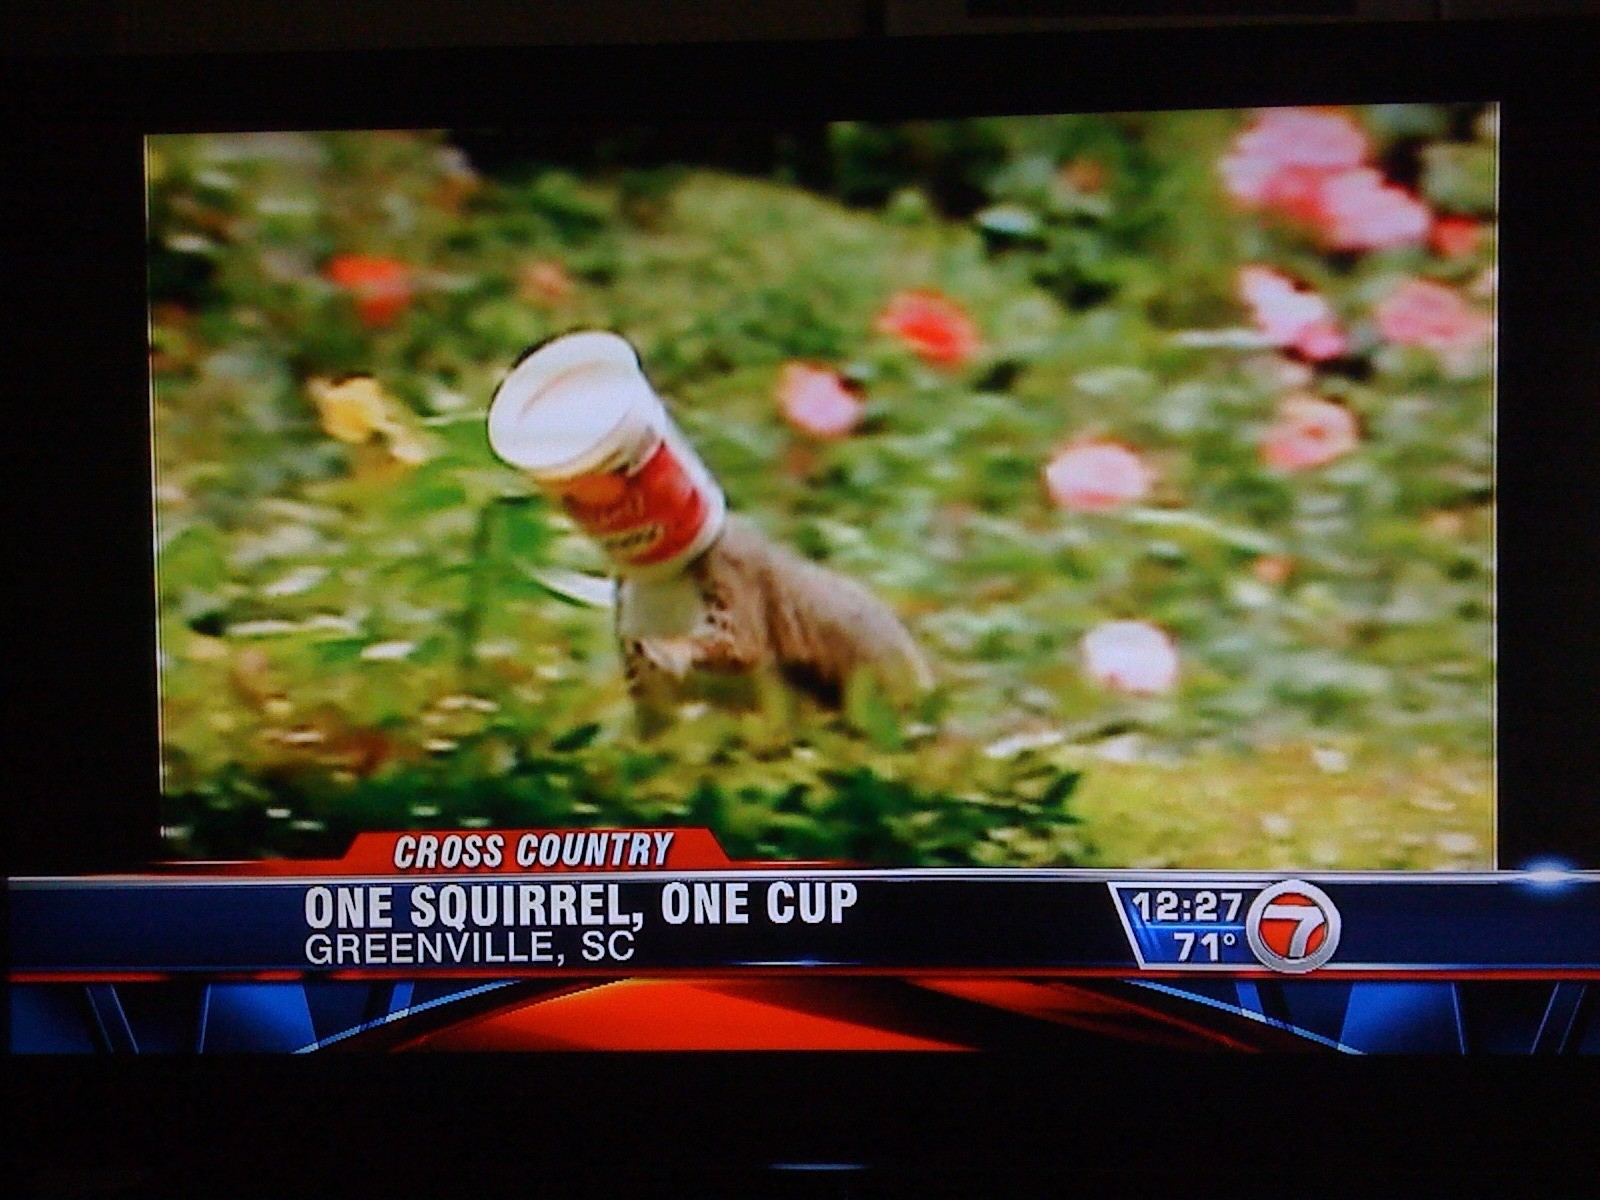 One squirrel, One cup